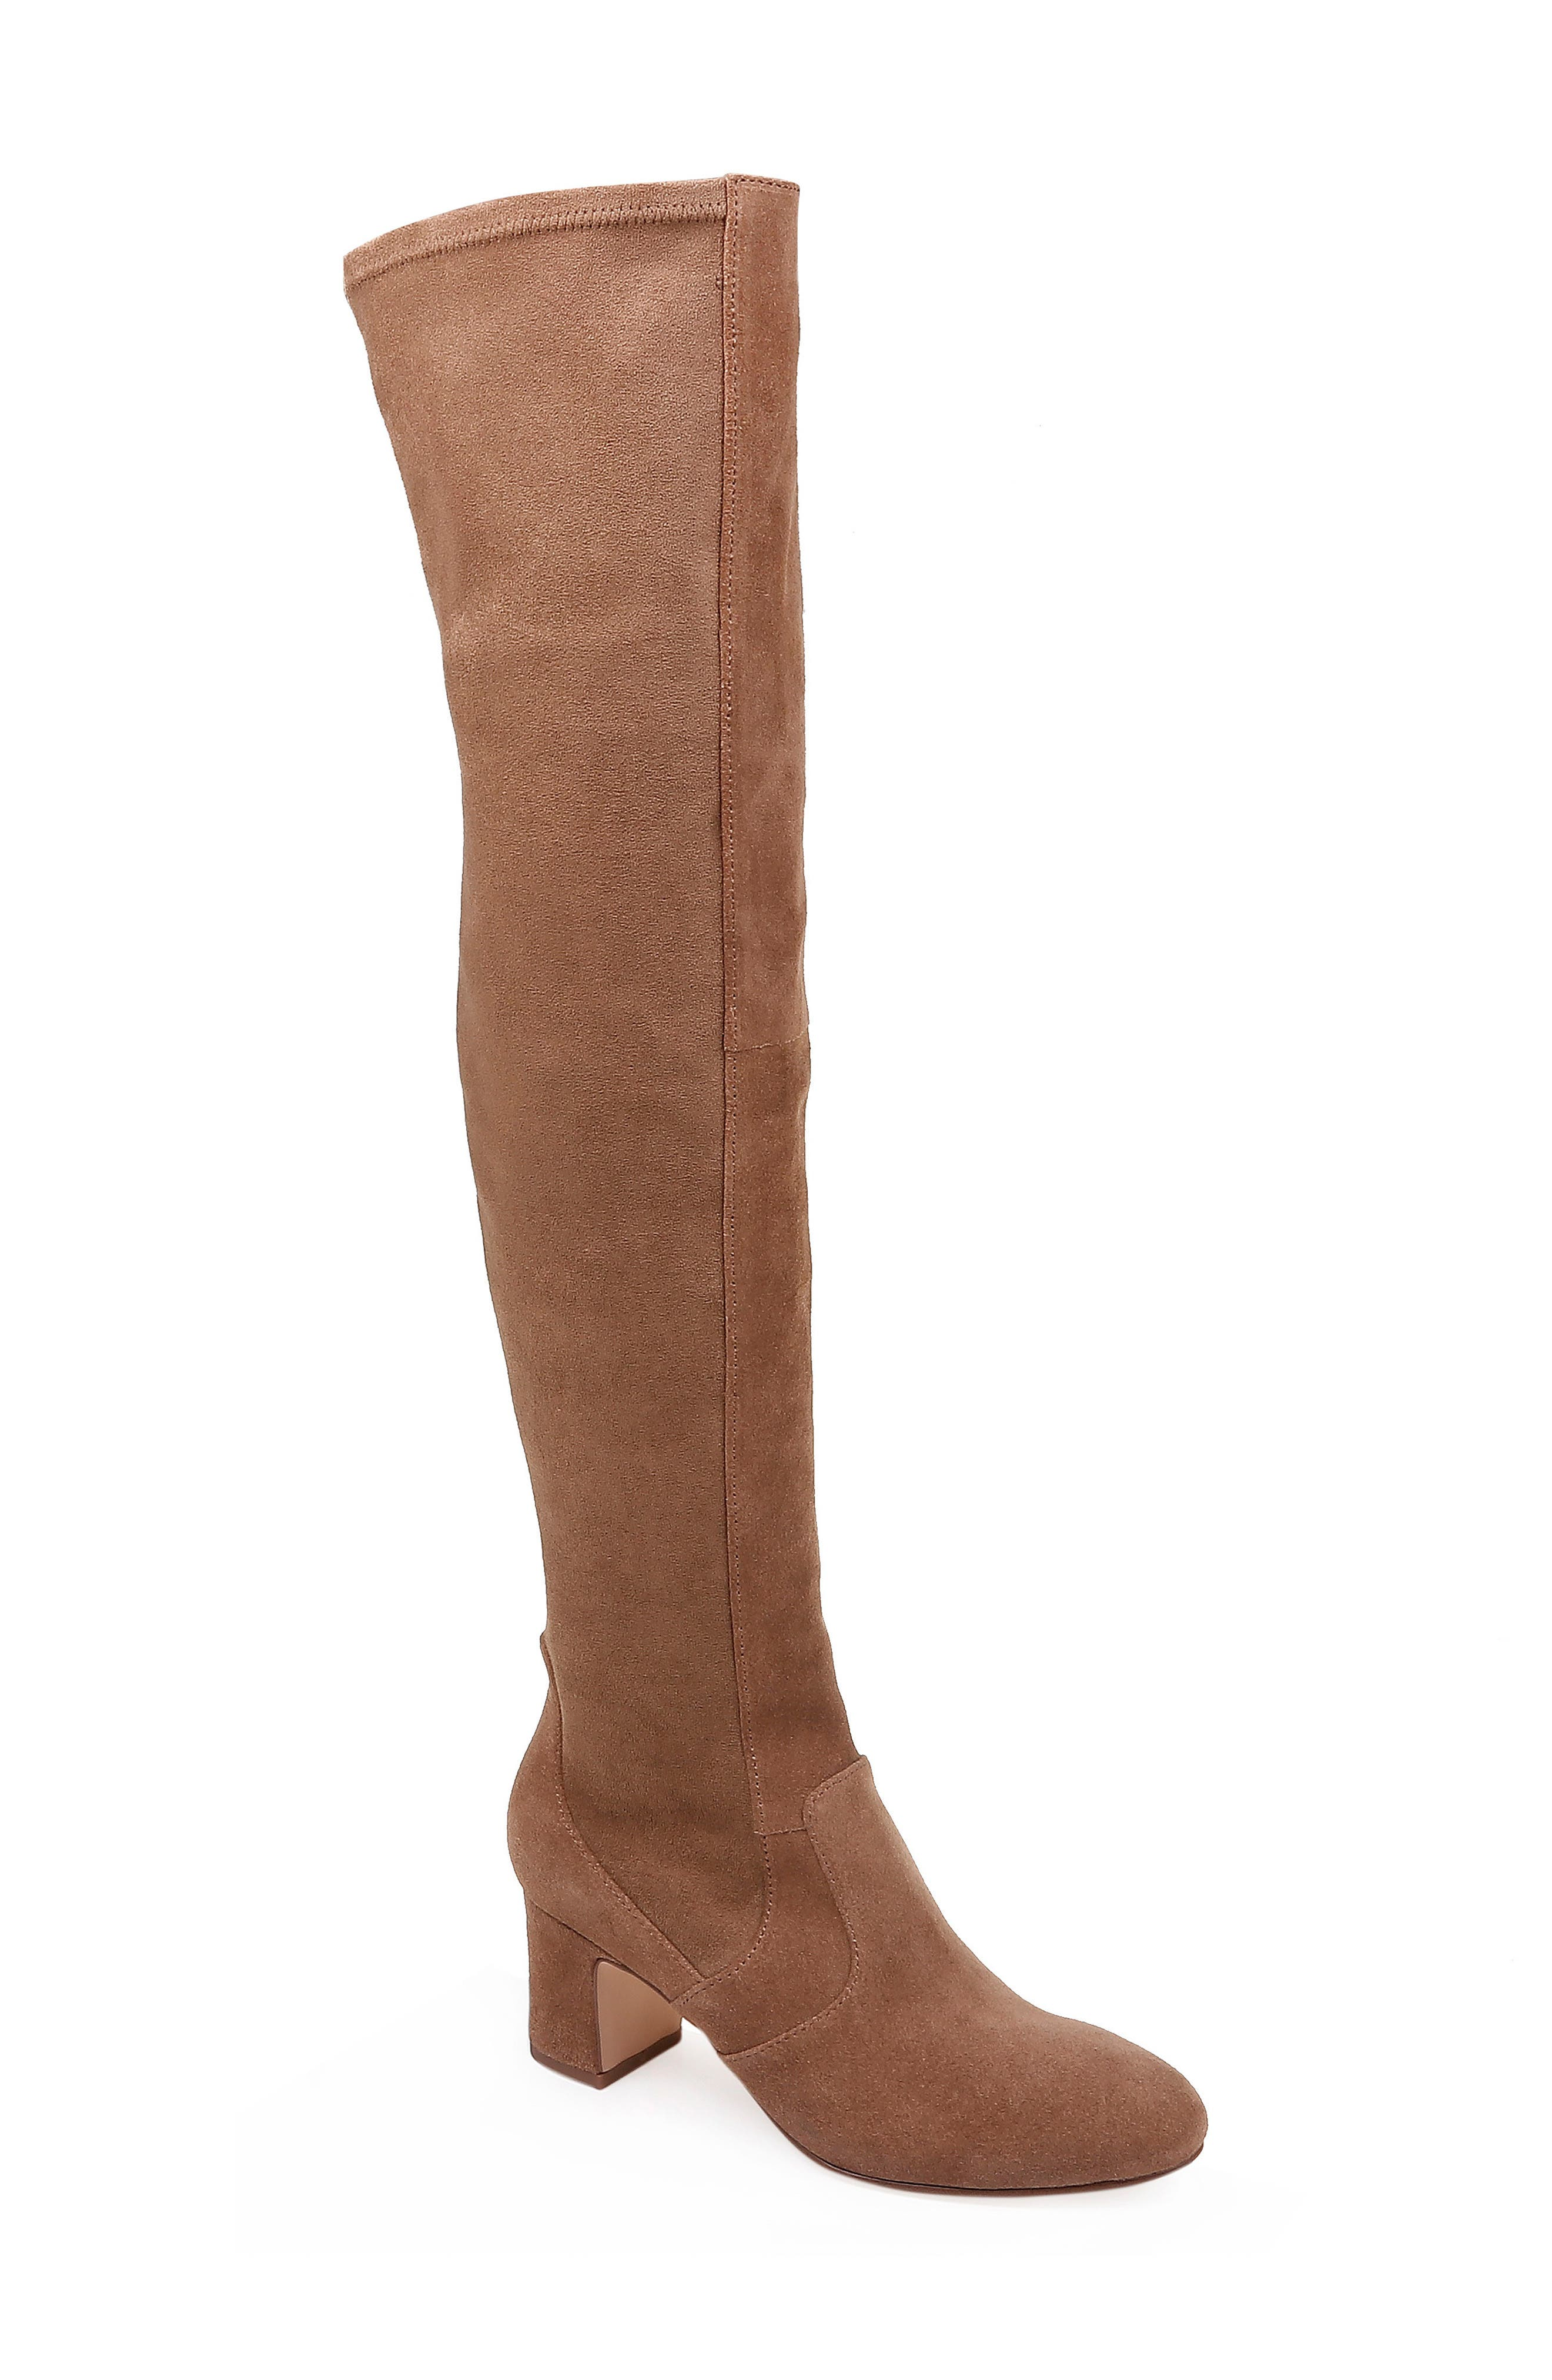 Over the Knee Stretch Back Boot,                             Main thumbnail 1, color,                             LIGHT BROWN SUEDE